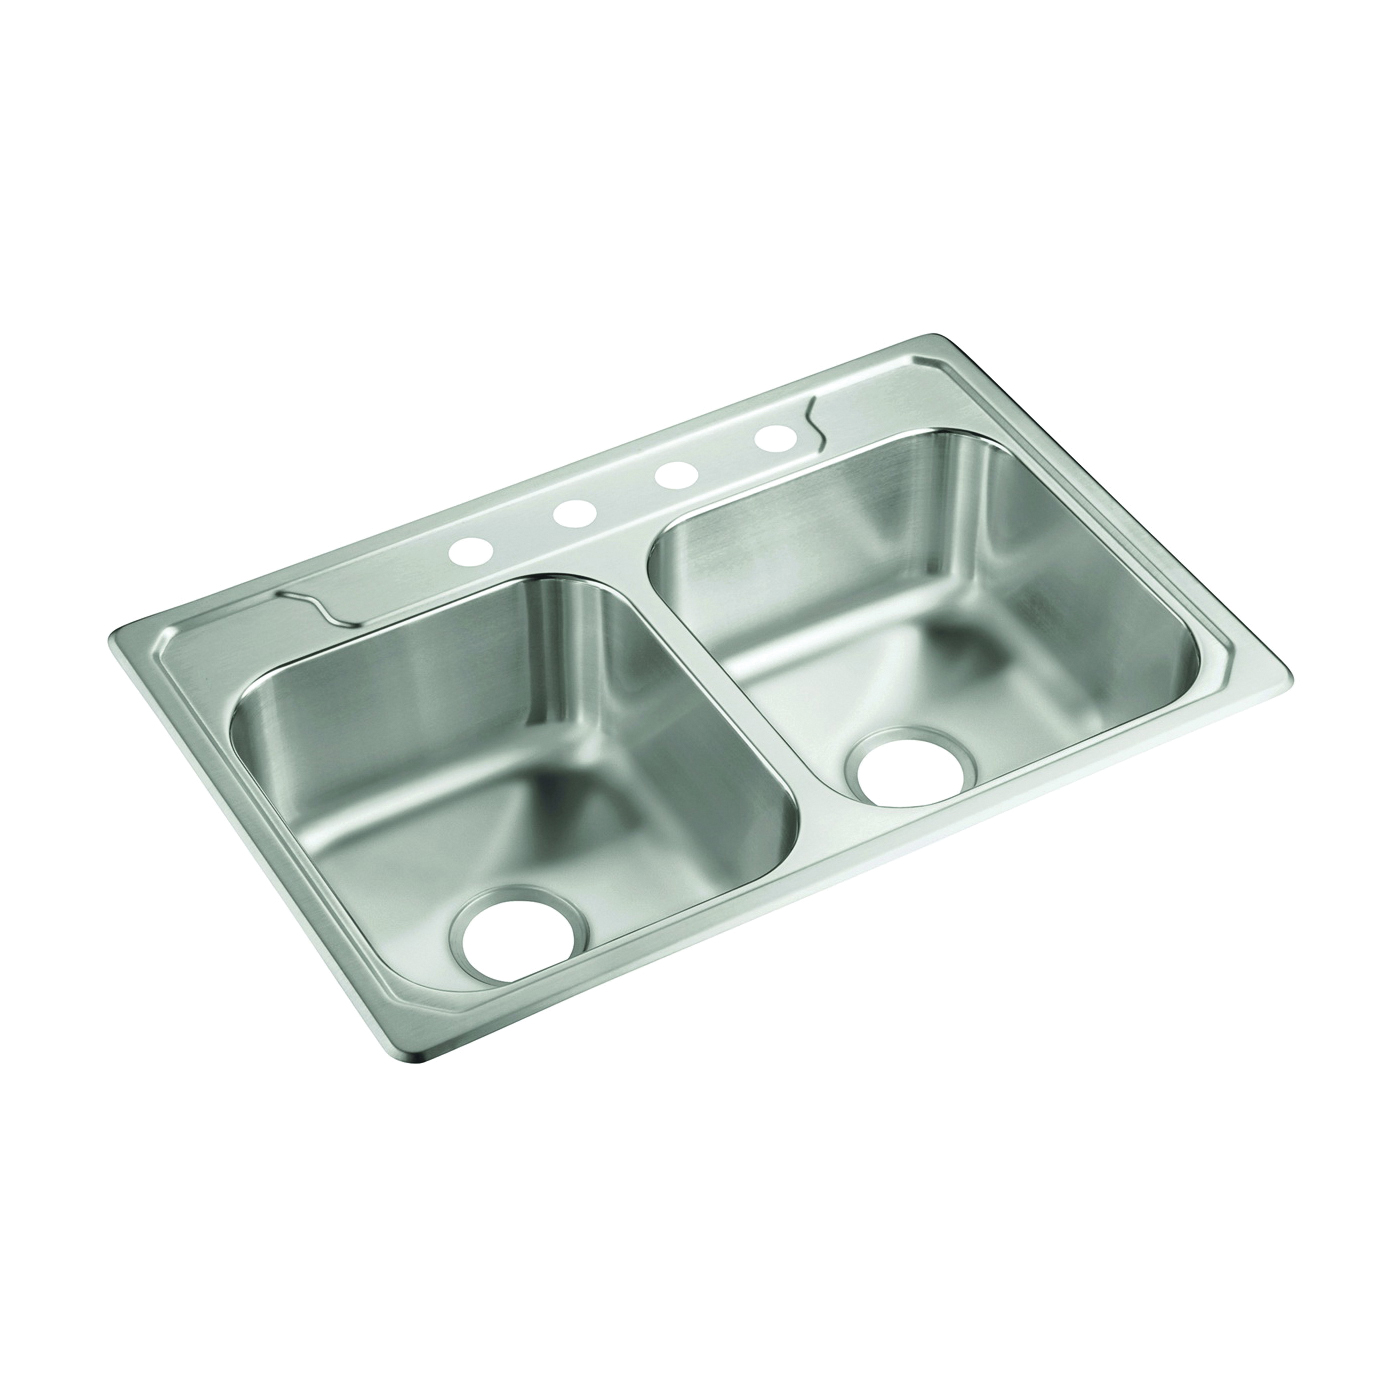 Picture of Sterling Middleton 14708-4-NA Kitchen Sink, 4-Faucet Hole, 22 in OAW, 8 in OAD, 33 in OAH, Stainless Steel